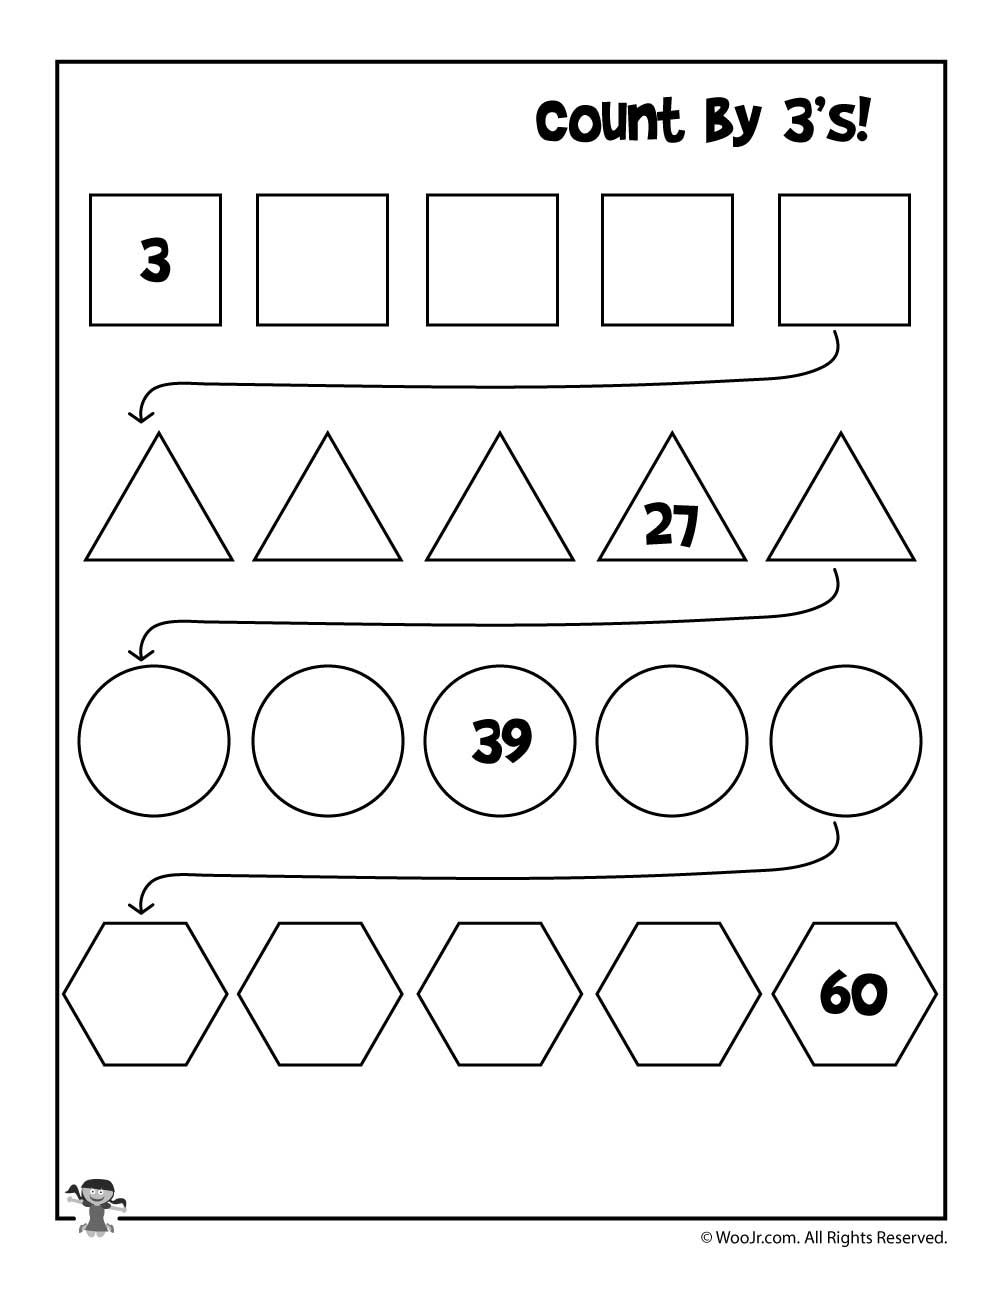 Count by 3's Worksheet Skip counting worksheets